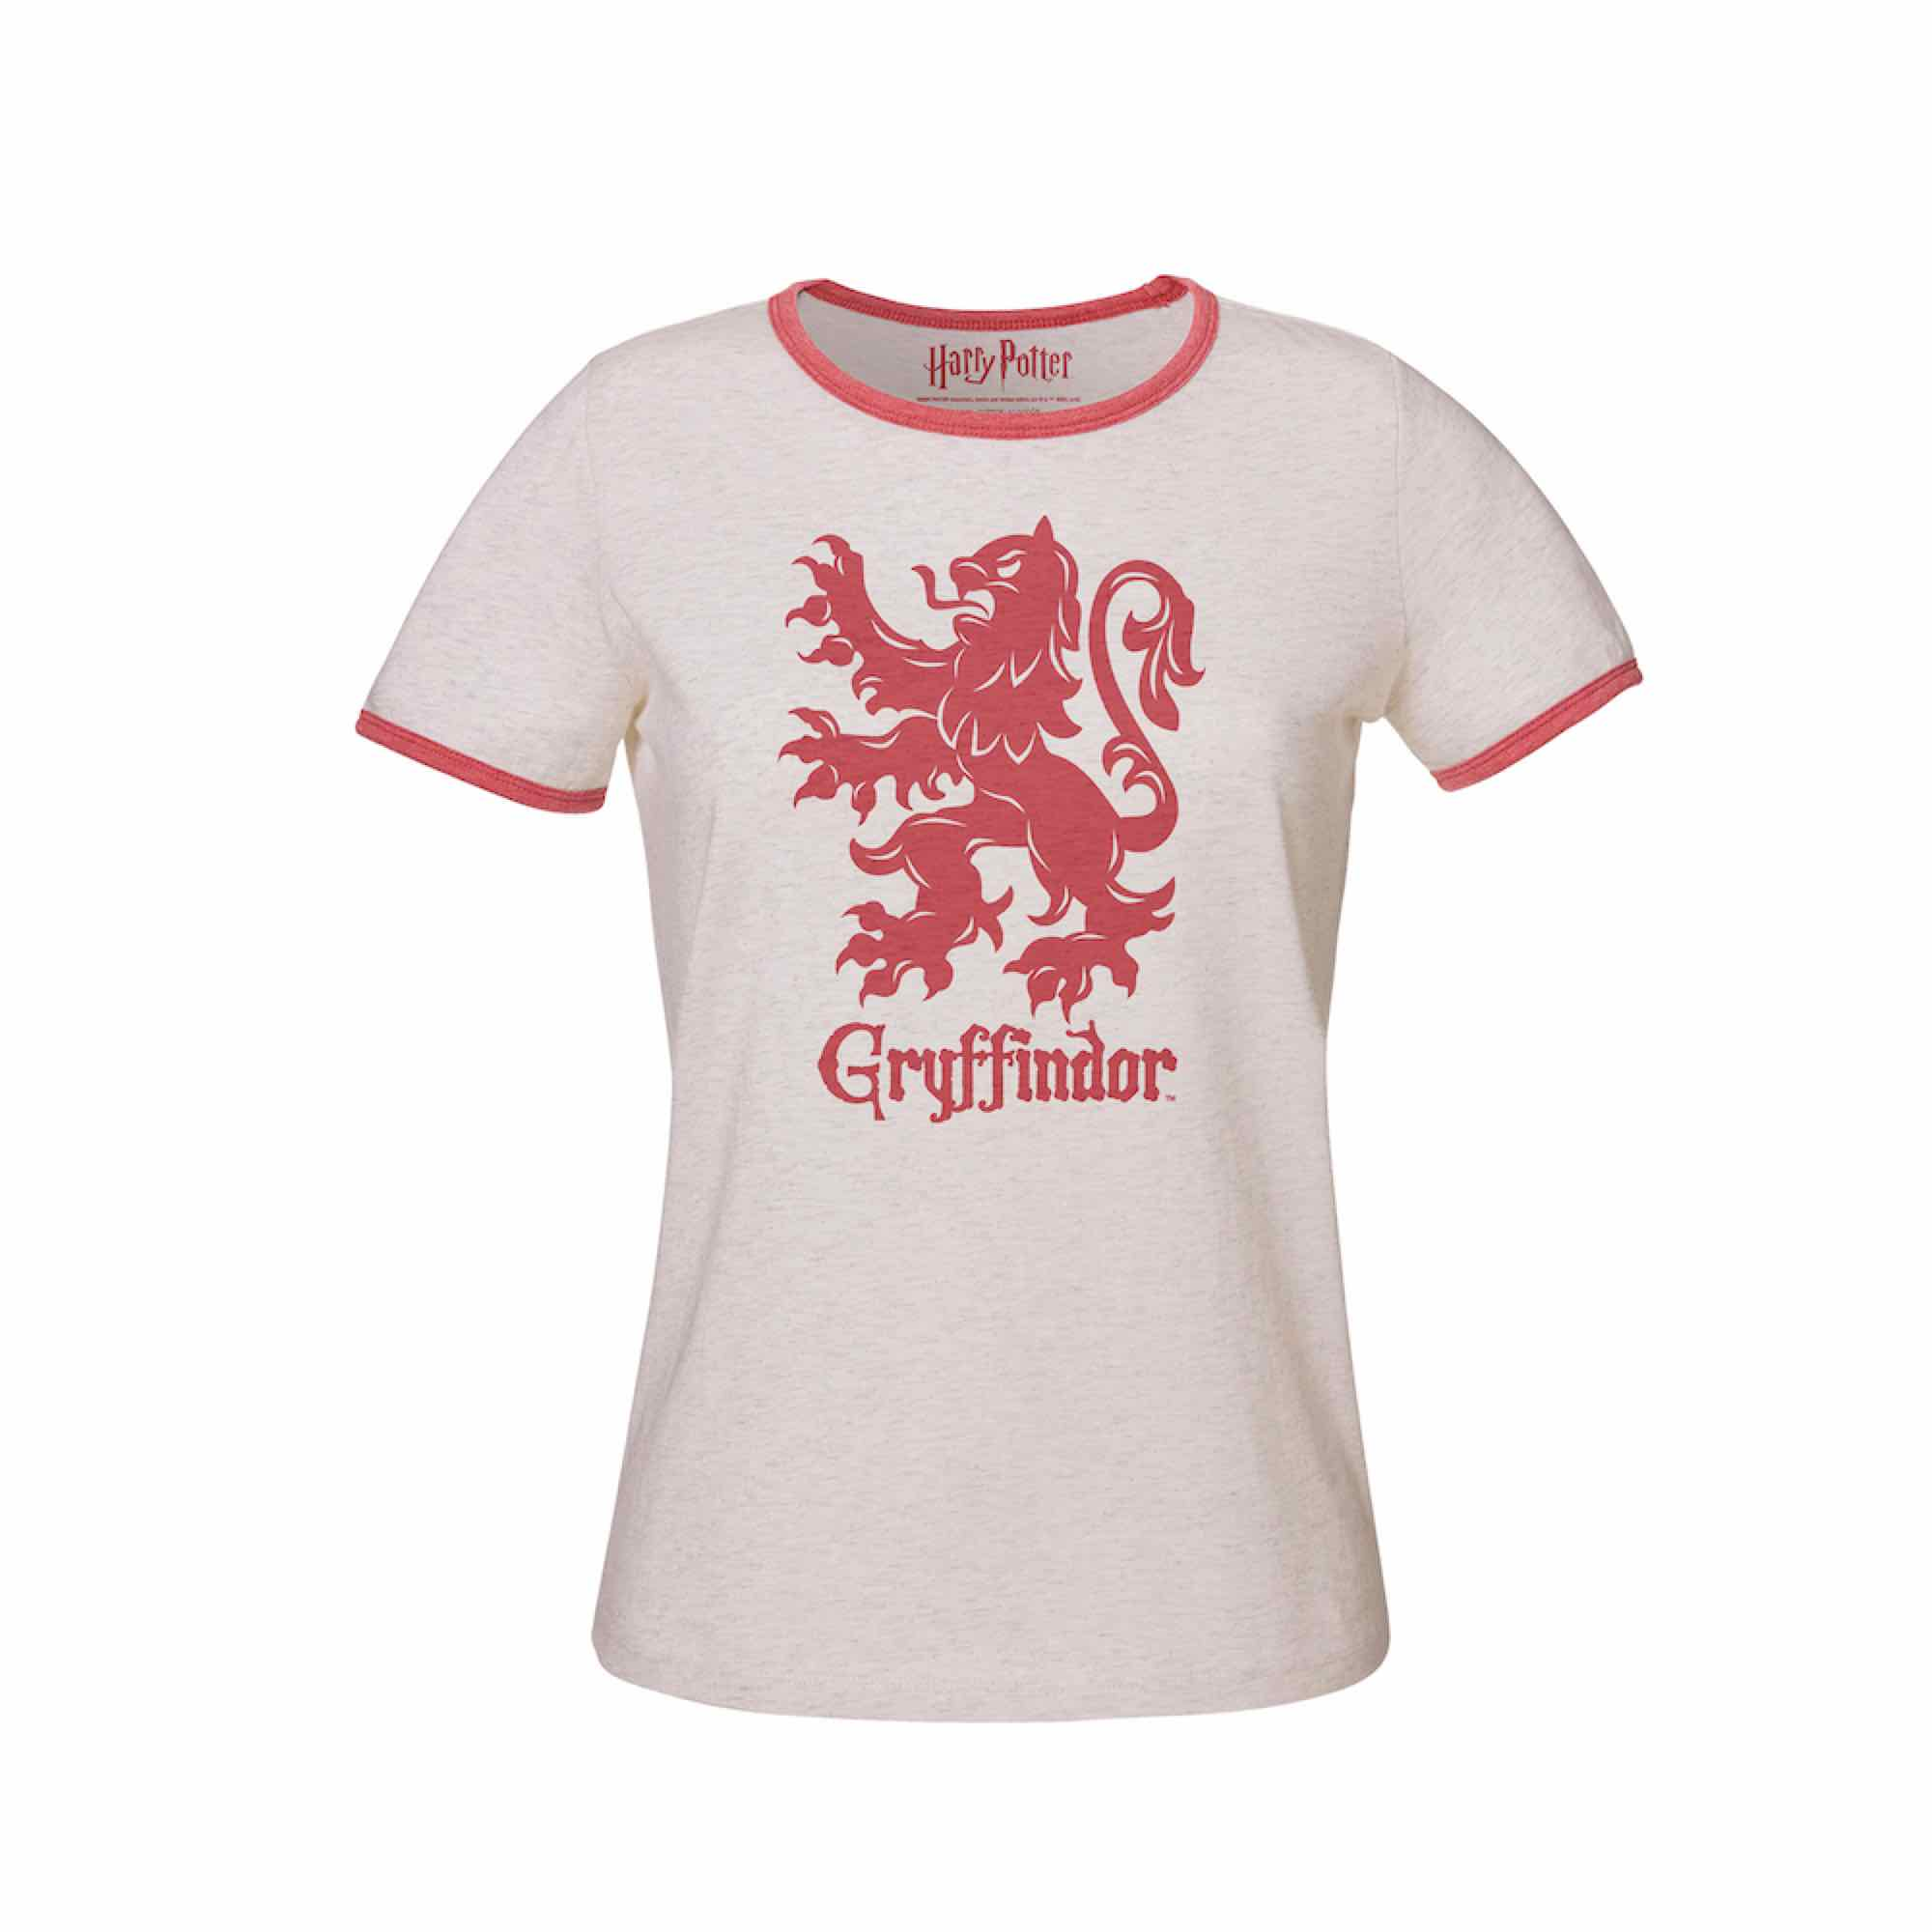 GRYFFINDOR T-L CAMISETA BLANCA CHICA HARRY POTTER